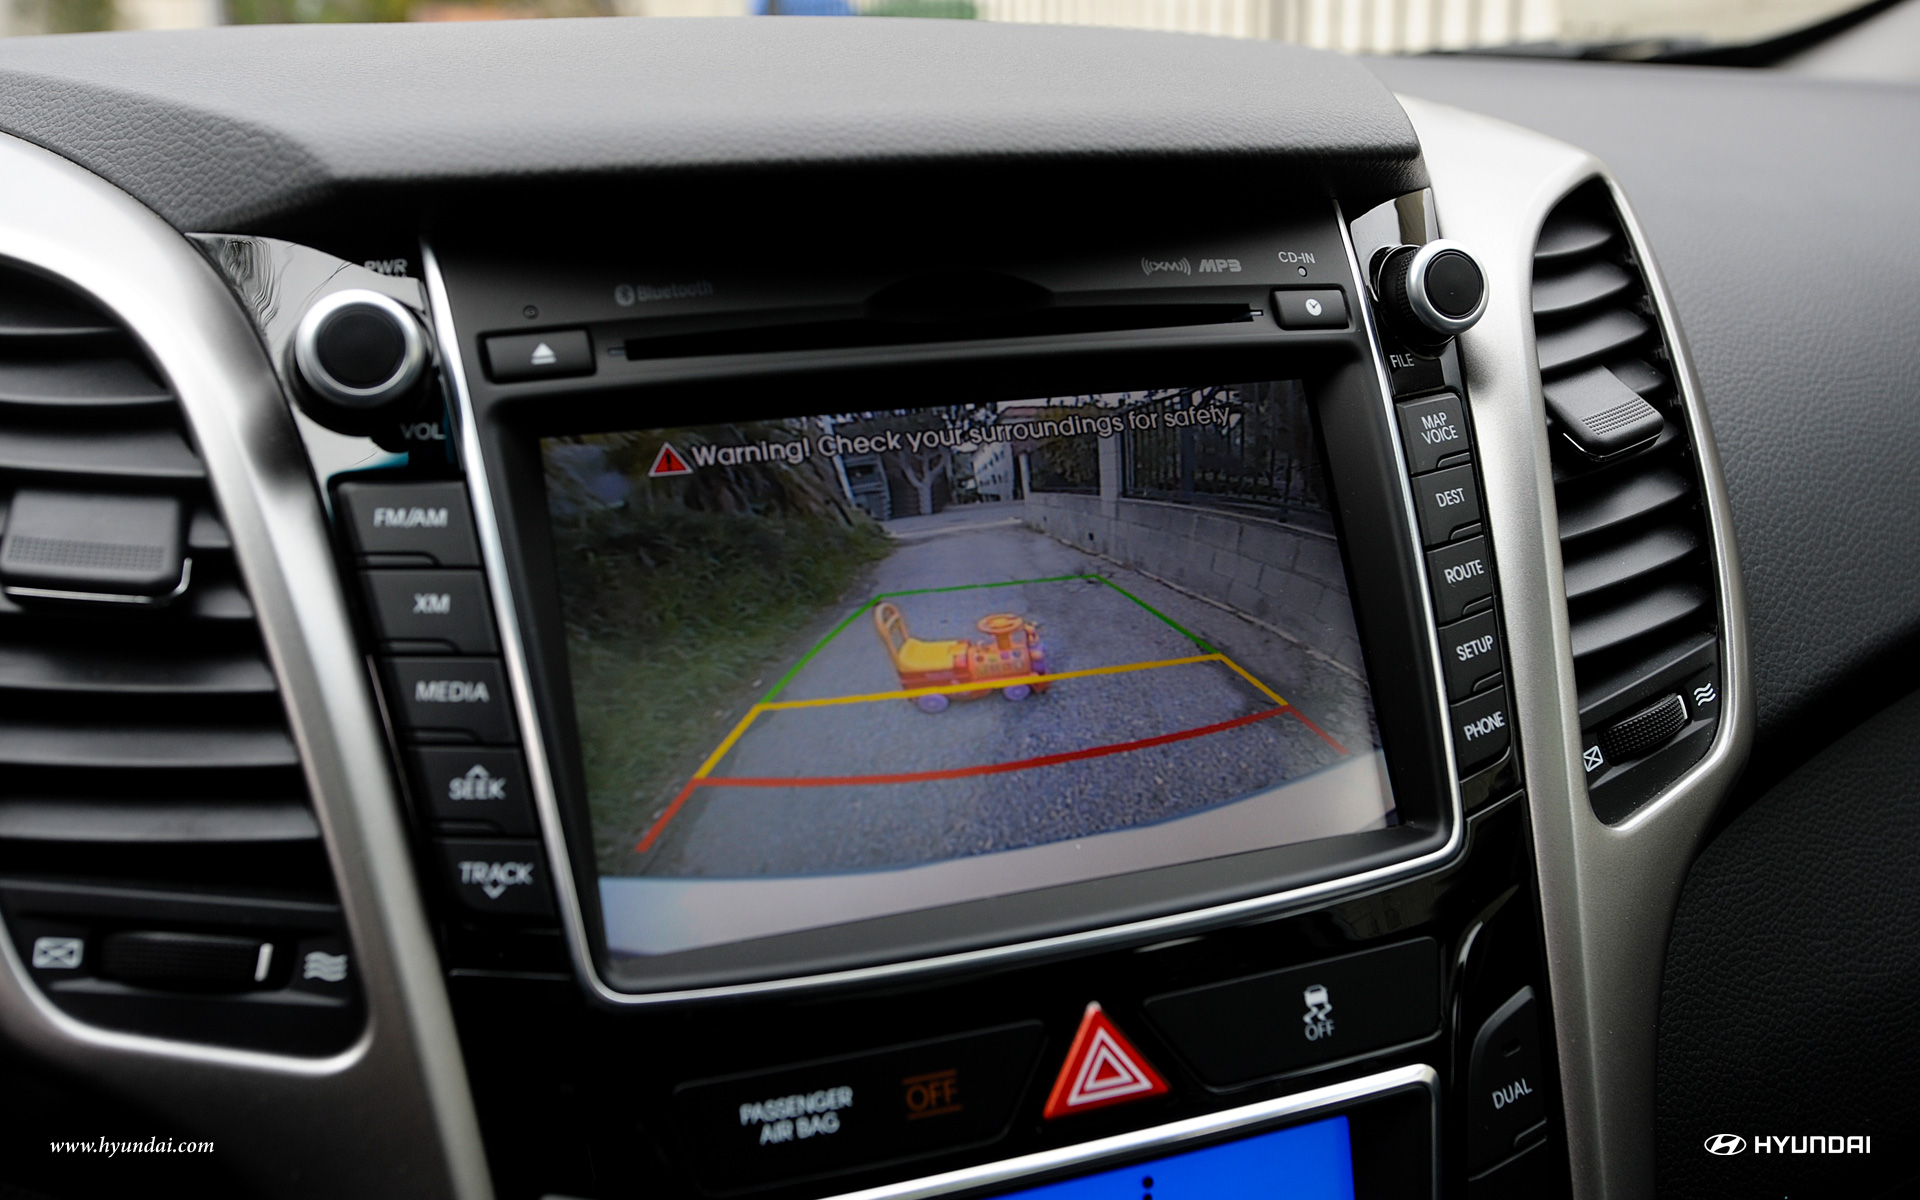 The Rearview Camera on the Elantra GT adds Peace of Mind!